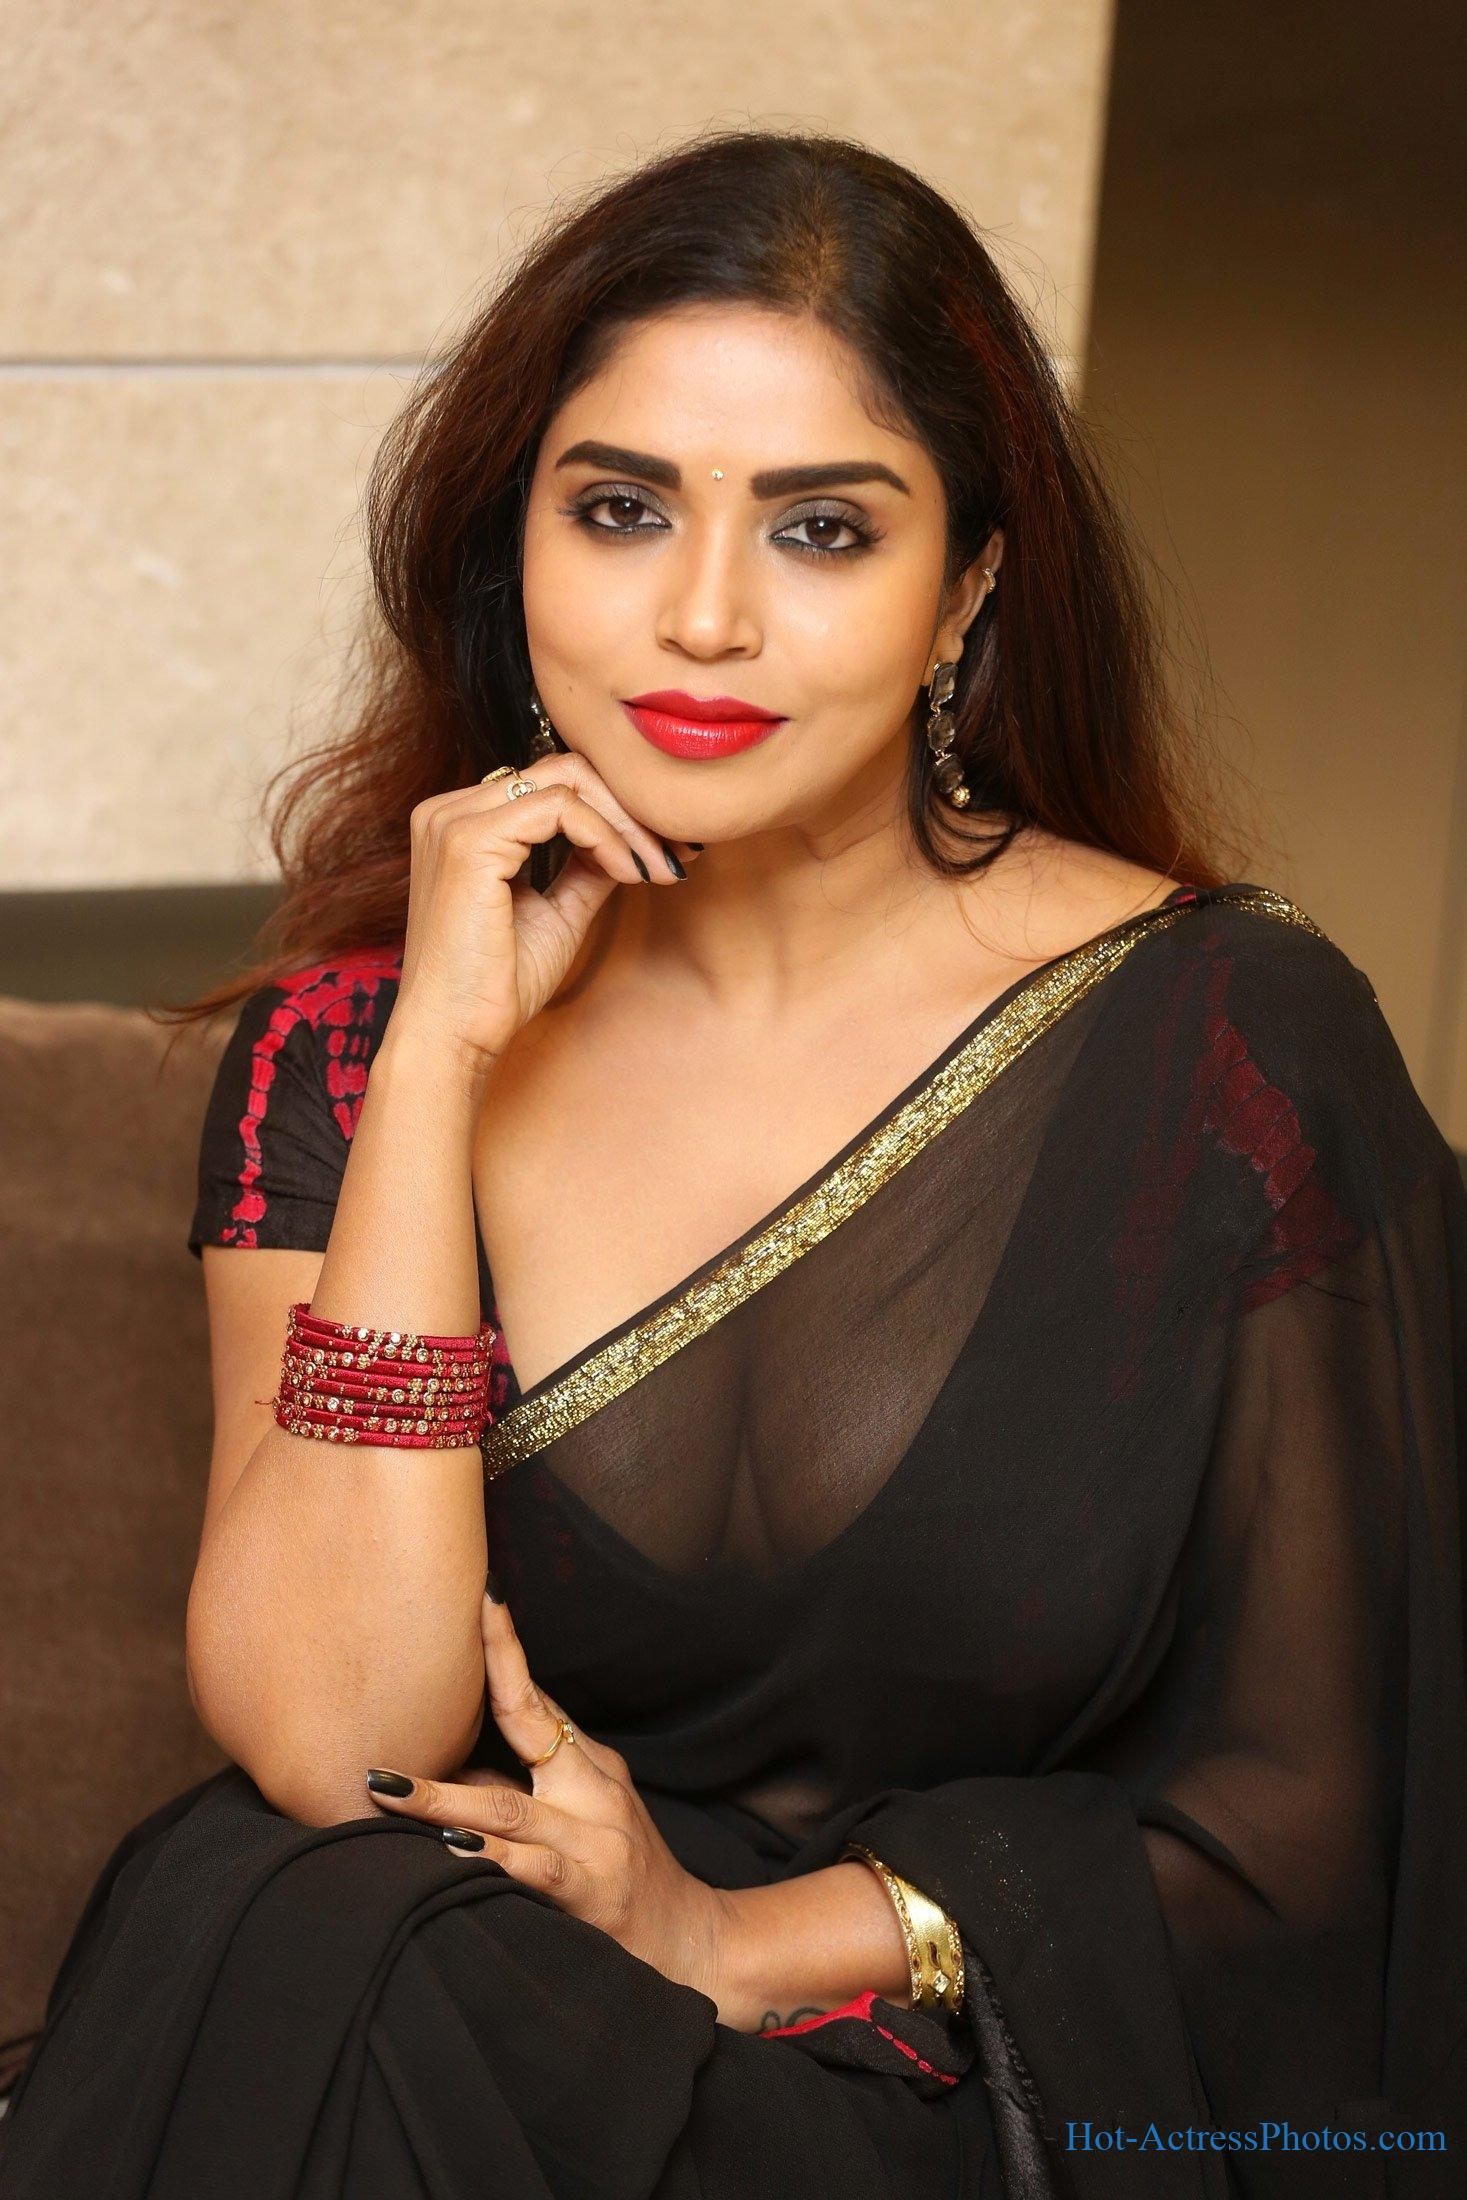 Karunya Chowdary Hot Cleavage Photos In Transparent Saree At 3 Monkeys Pre-Release Event